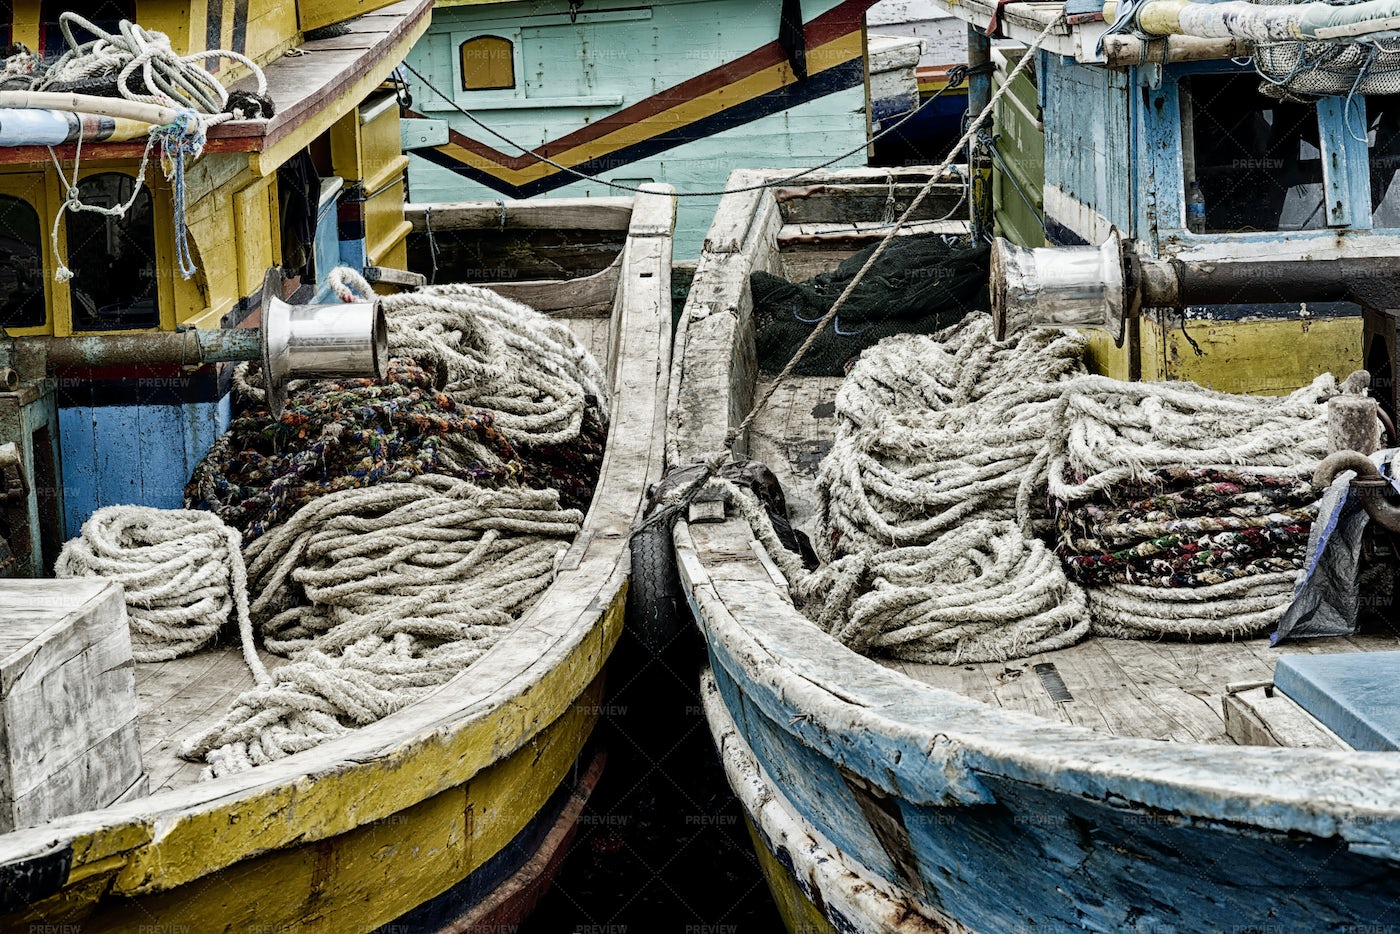 Coiled Ropes On Old Boats: Stock Photos